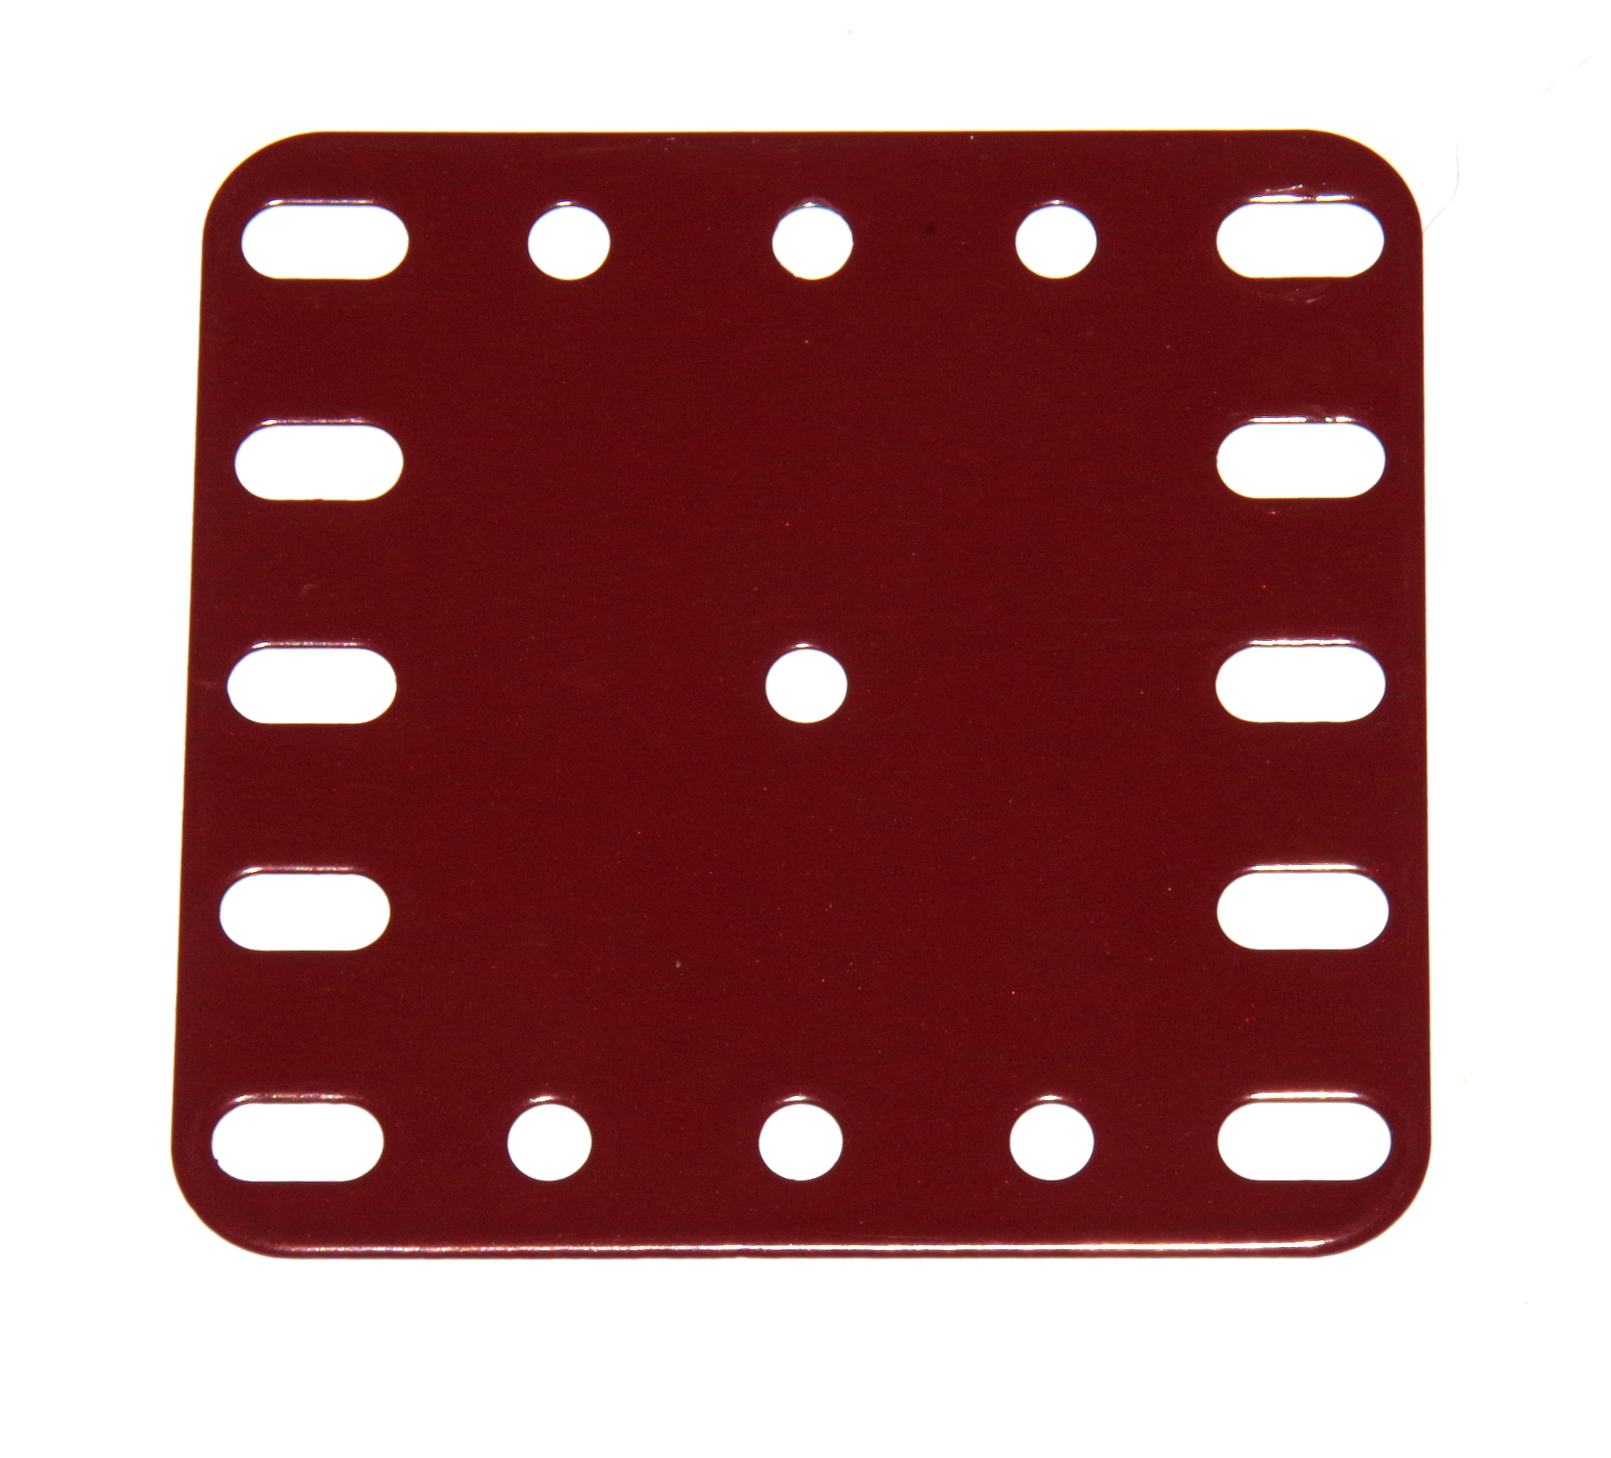 190 Flexible Plate 5x5 Dark Red Original